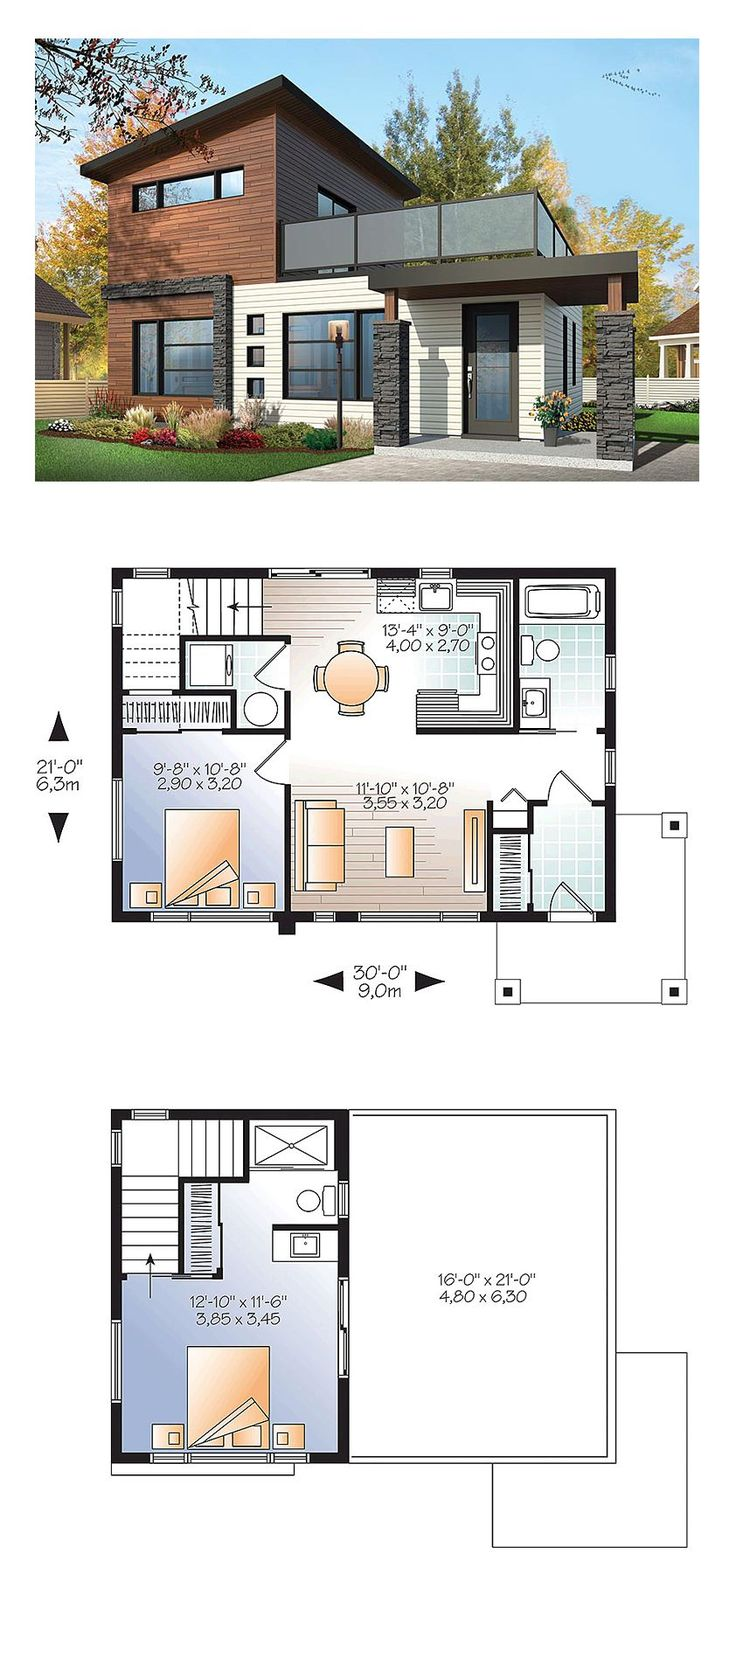 Enjoyable Top 25 Ideas About Modern Tiny House On Pinterest Mini Homes Largest Home Design Picture Inspirations Pitcheantrous